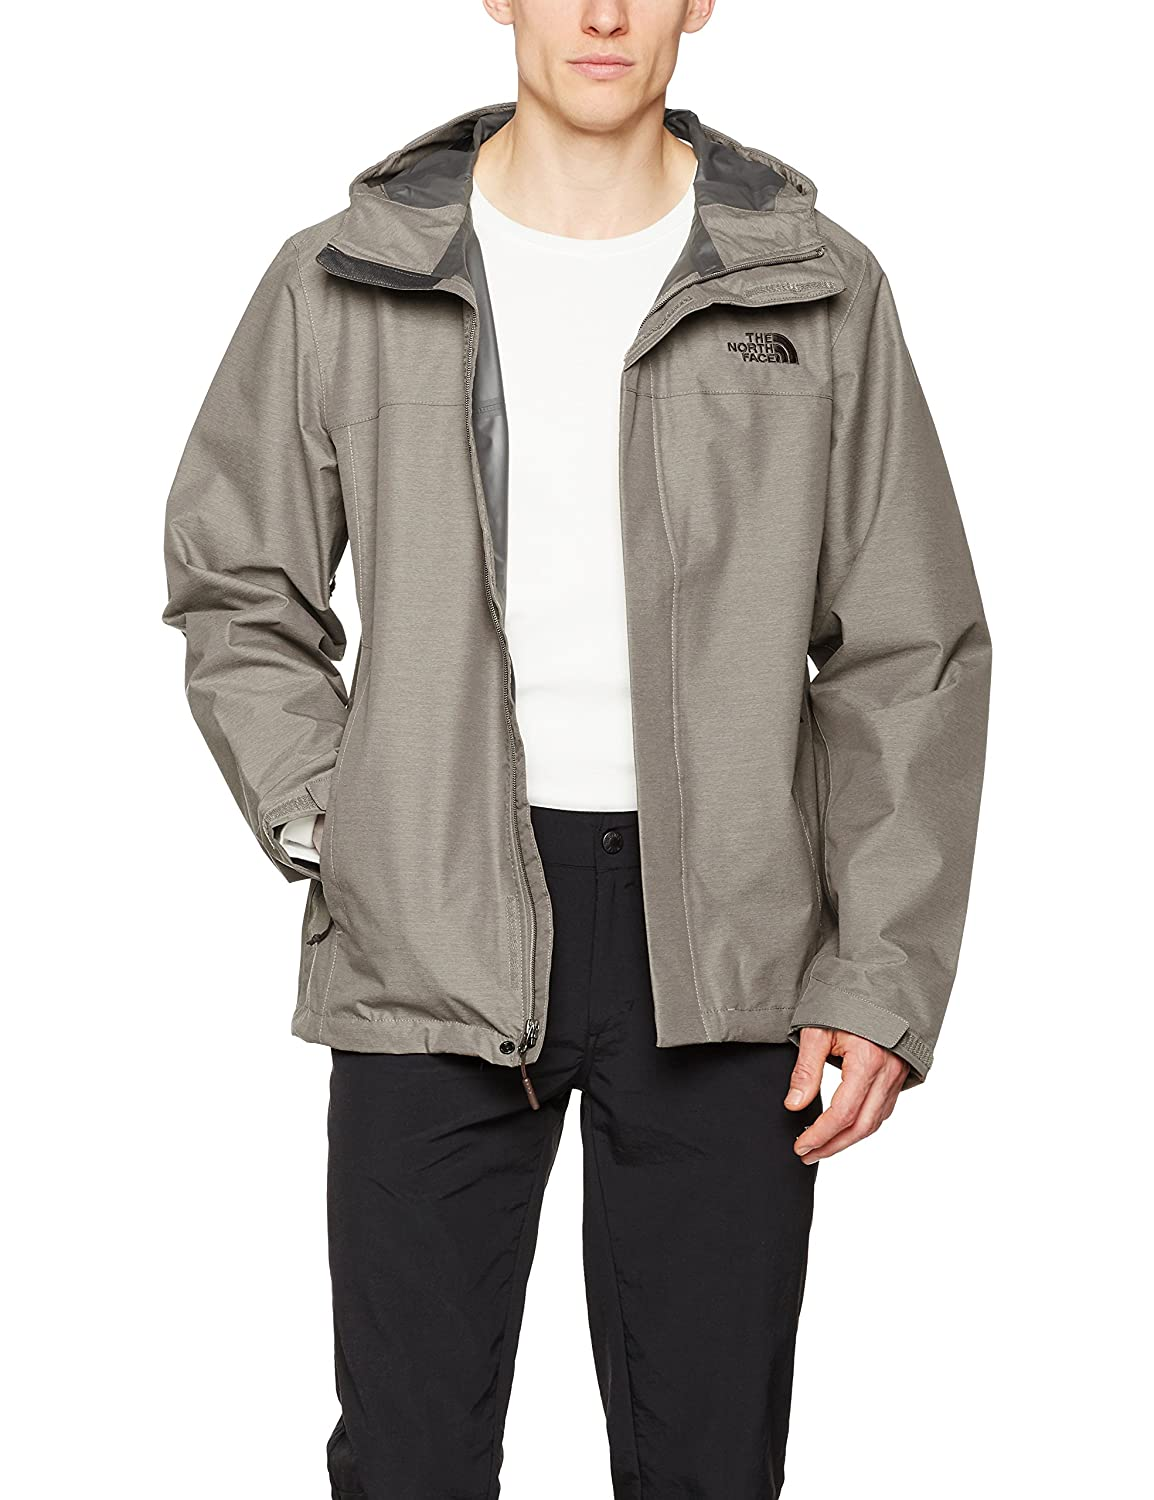 The North Face OUTERWEAR メンズ B01HQS8D5C Small|Falcon Brown Heather/Falcon Brown Heather Falcon Brown Heather/Falcon Brown Heather Small